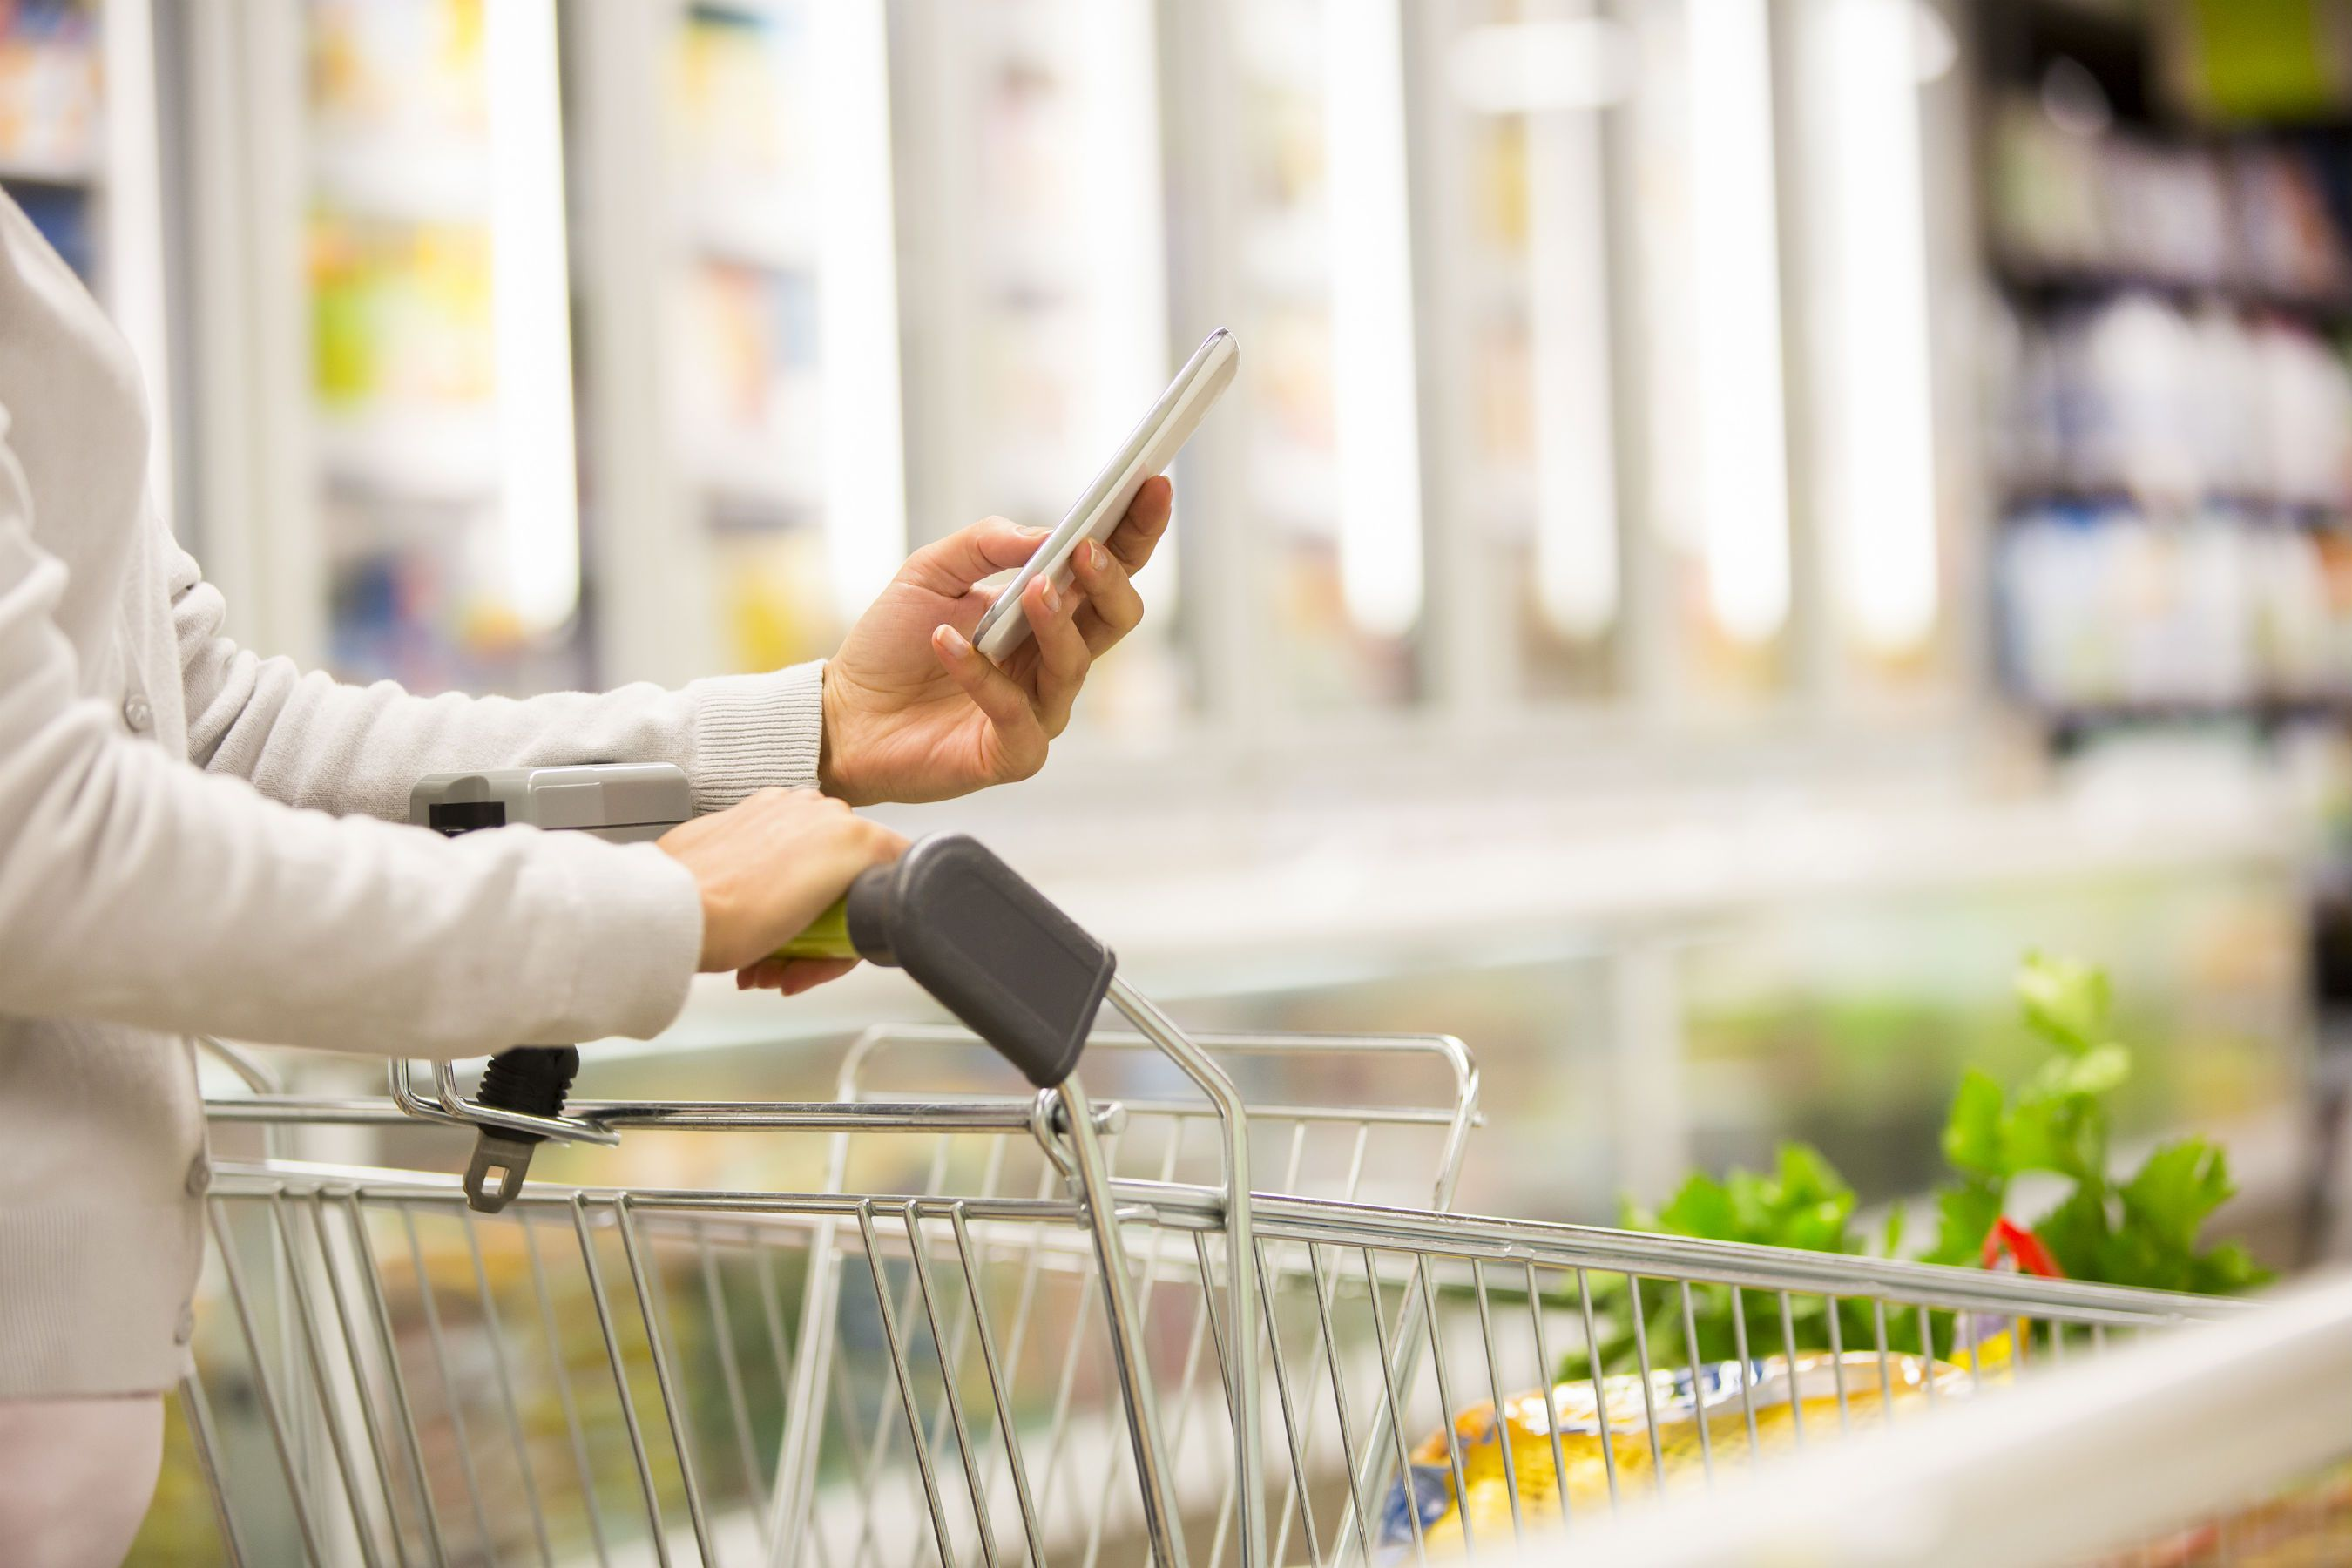 How retailers can maximize their mobile traffic through